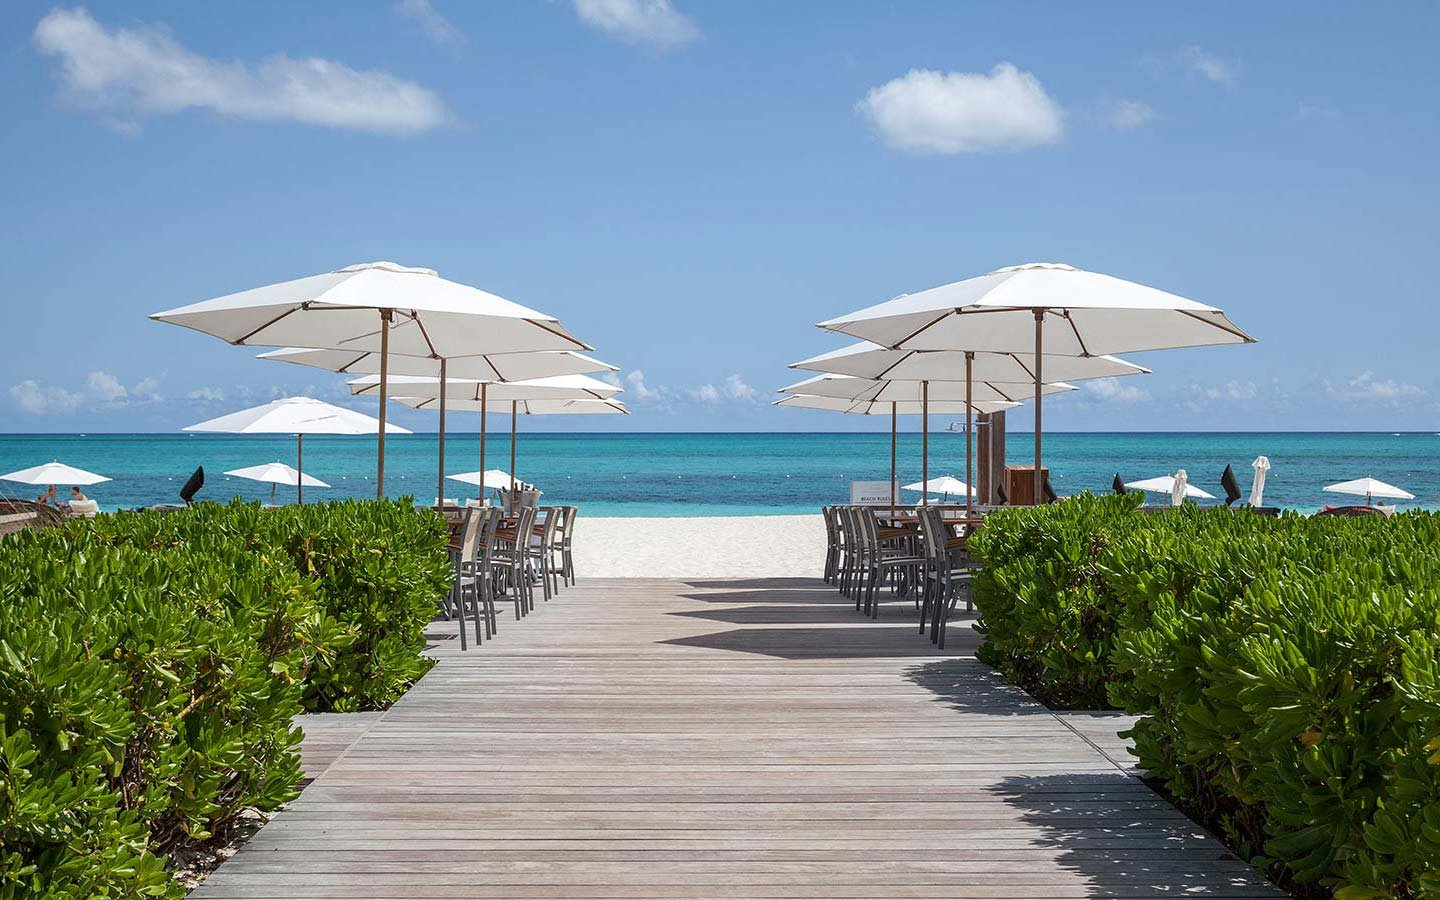 The boardwalk at The Gansevoort Turks and Caicos